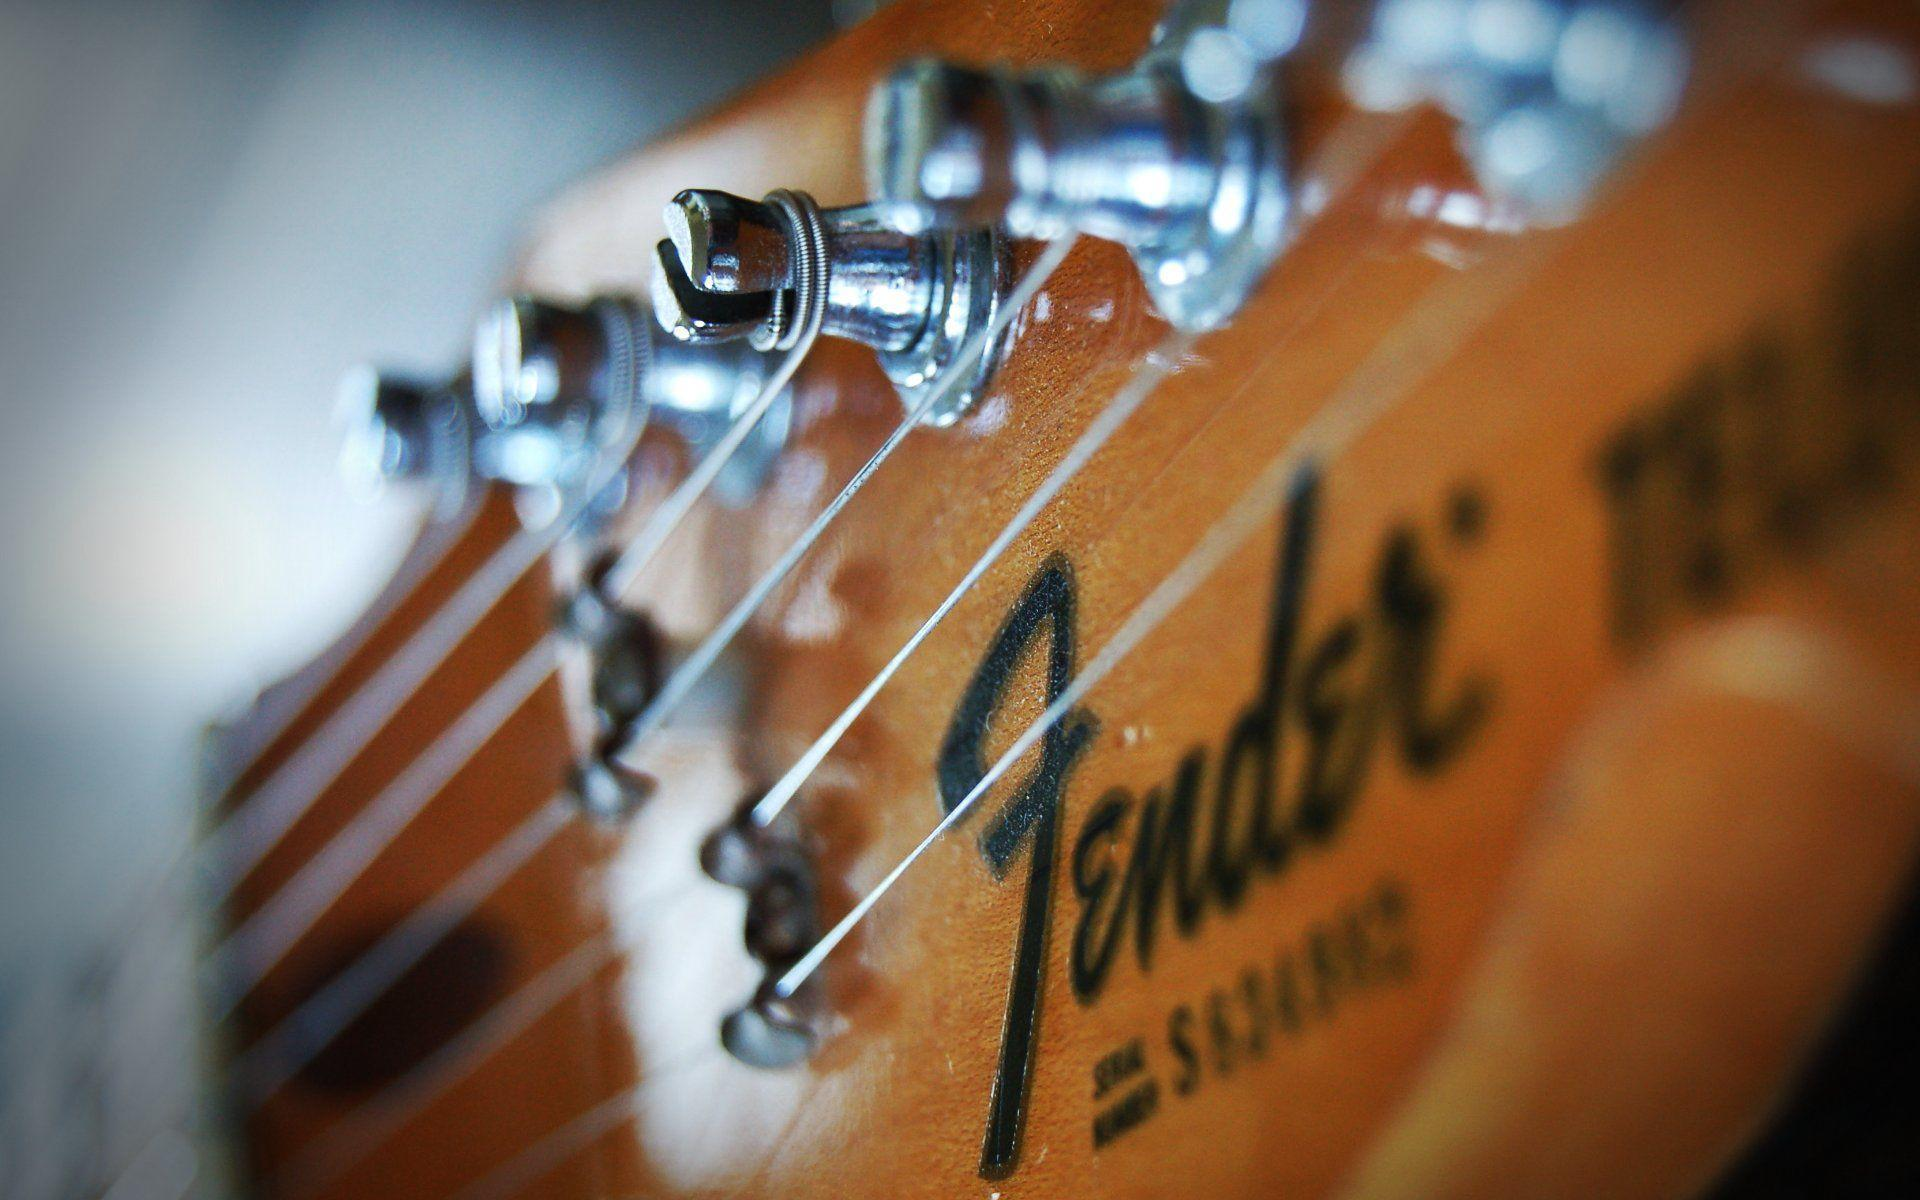 Fender Wallpapers - Full HD wallpaper search - page 2